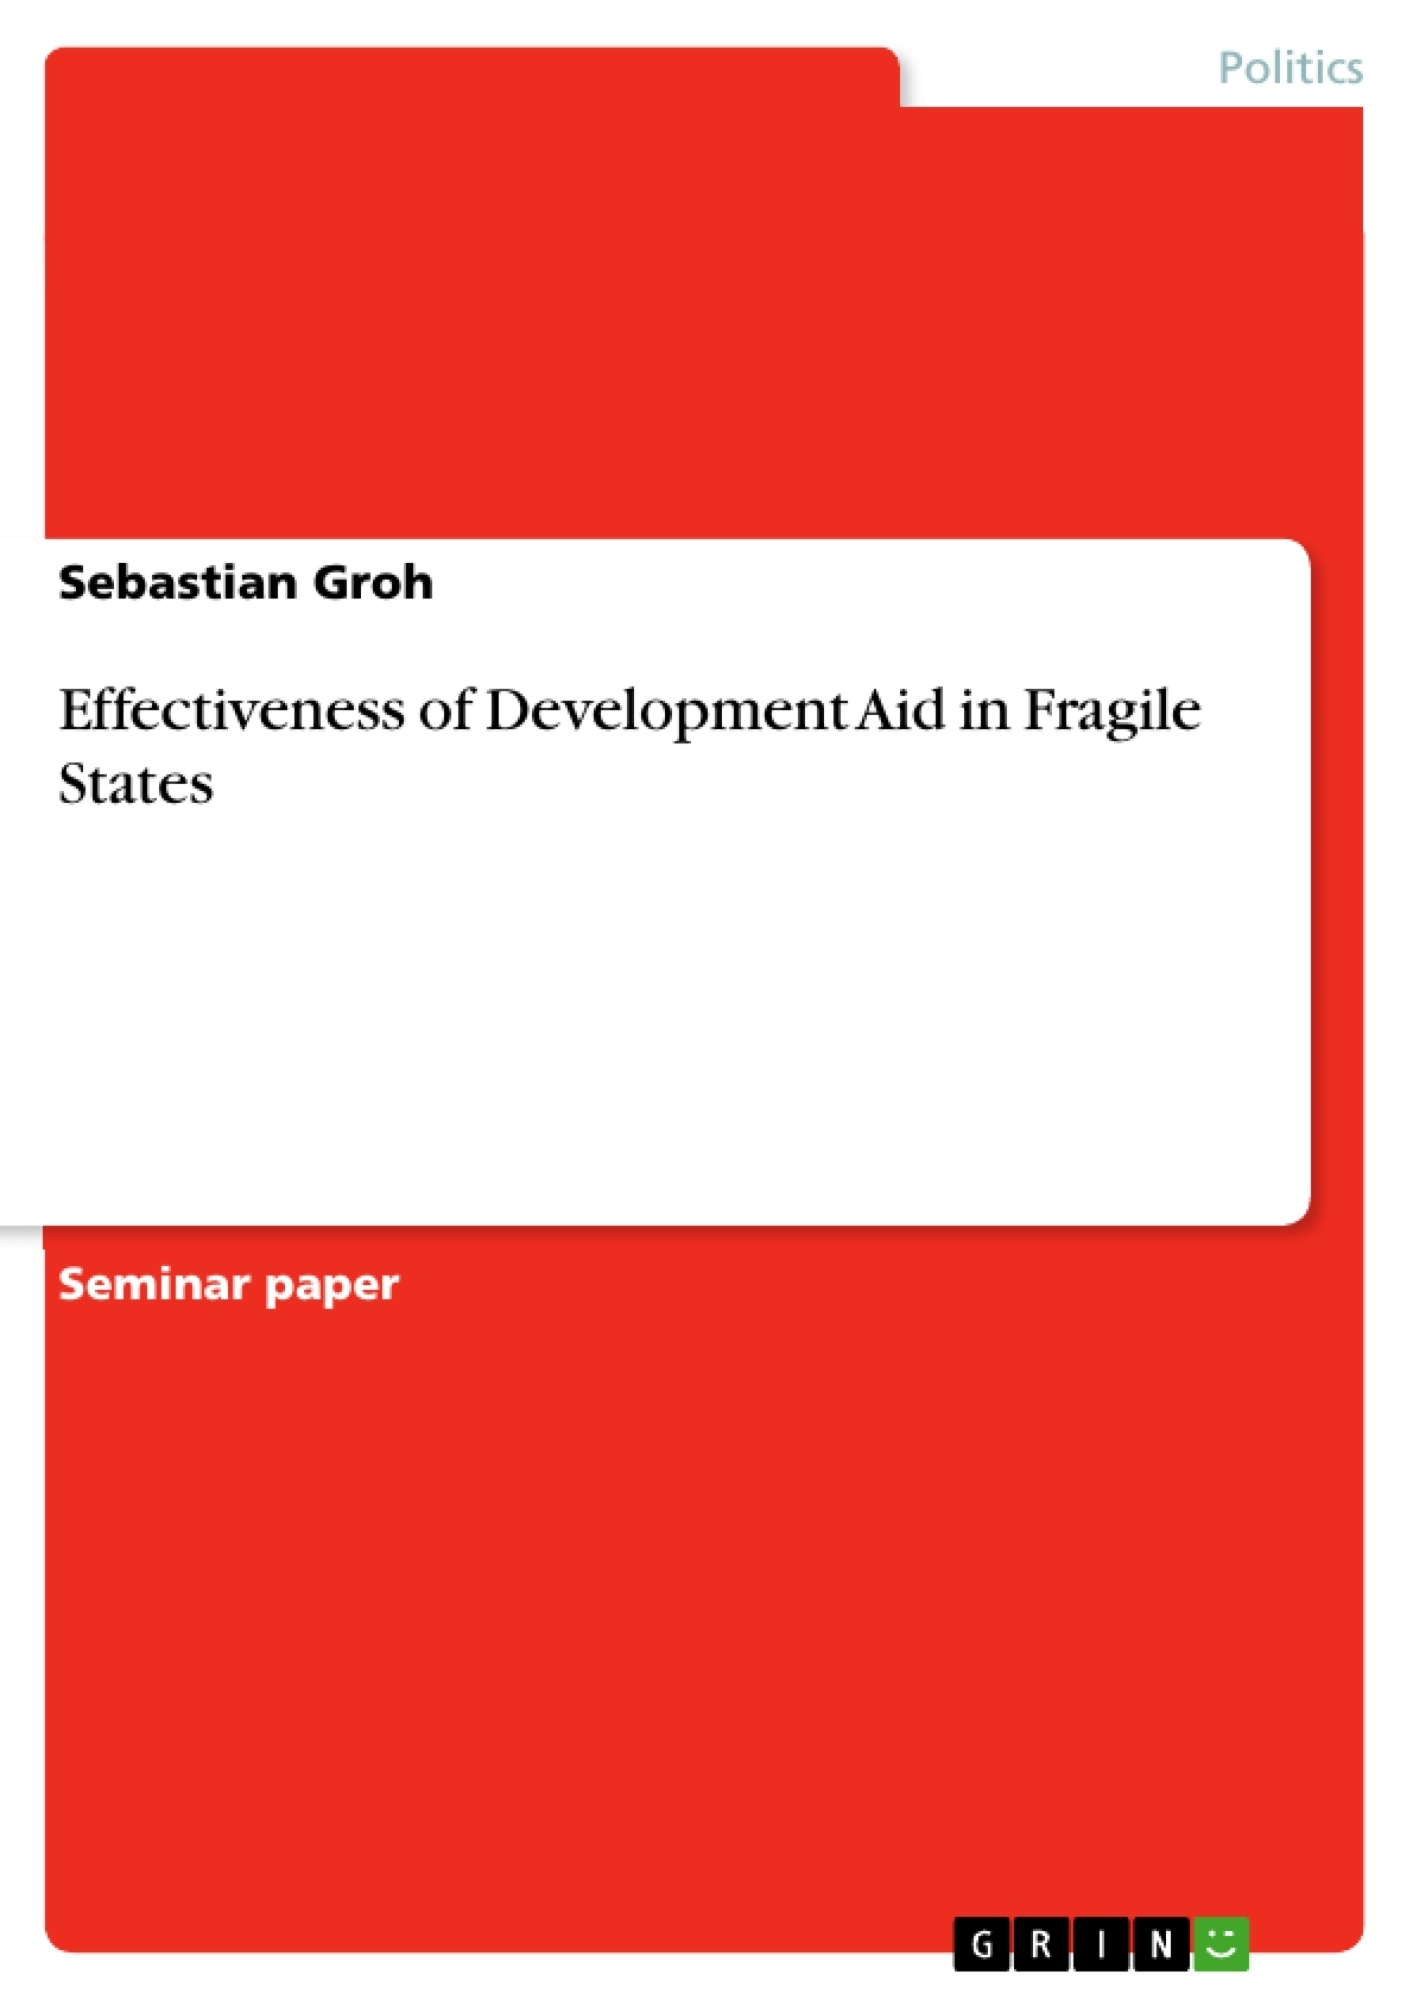 Title: Effectiveness of Development Aid in Fragile States